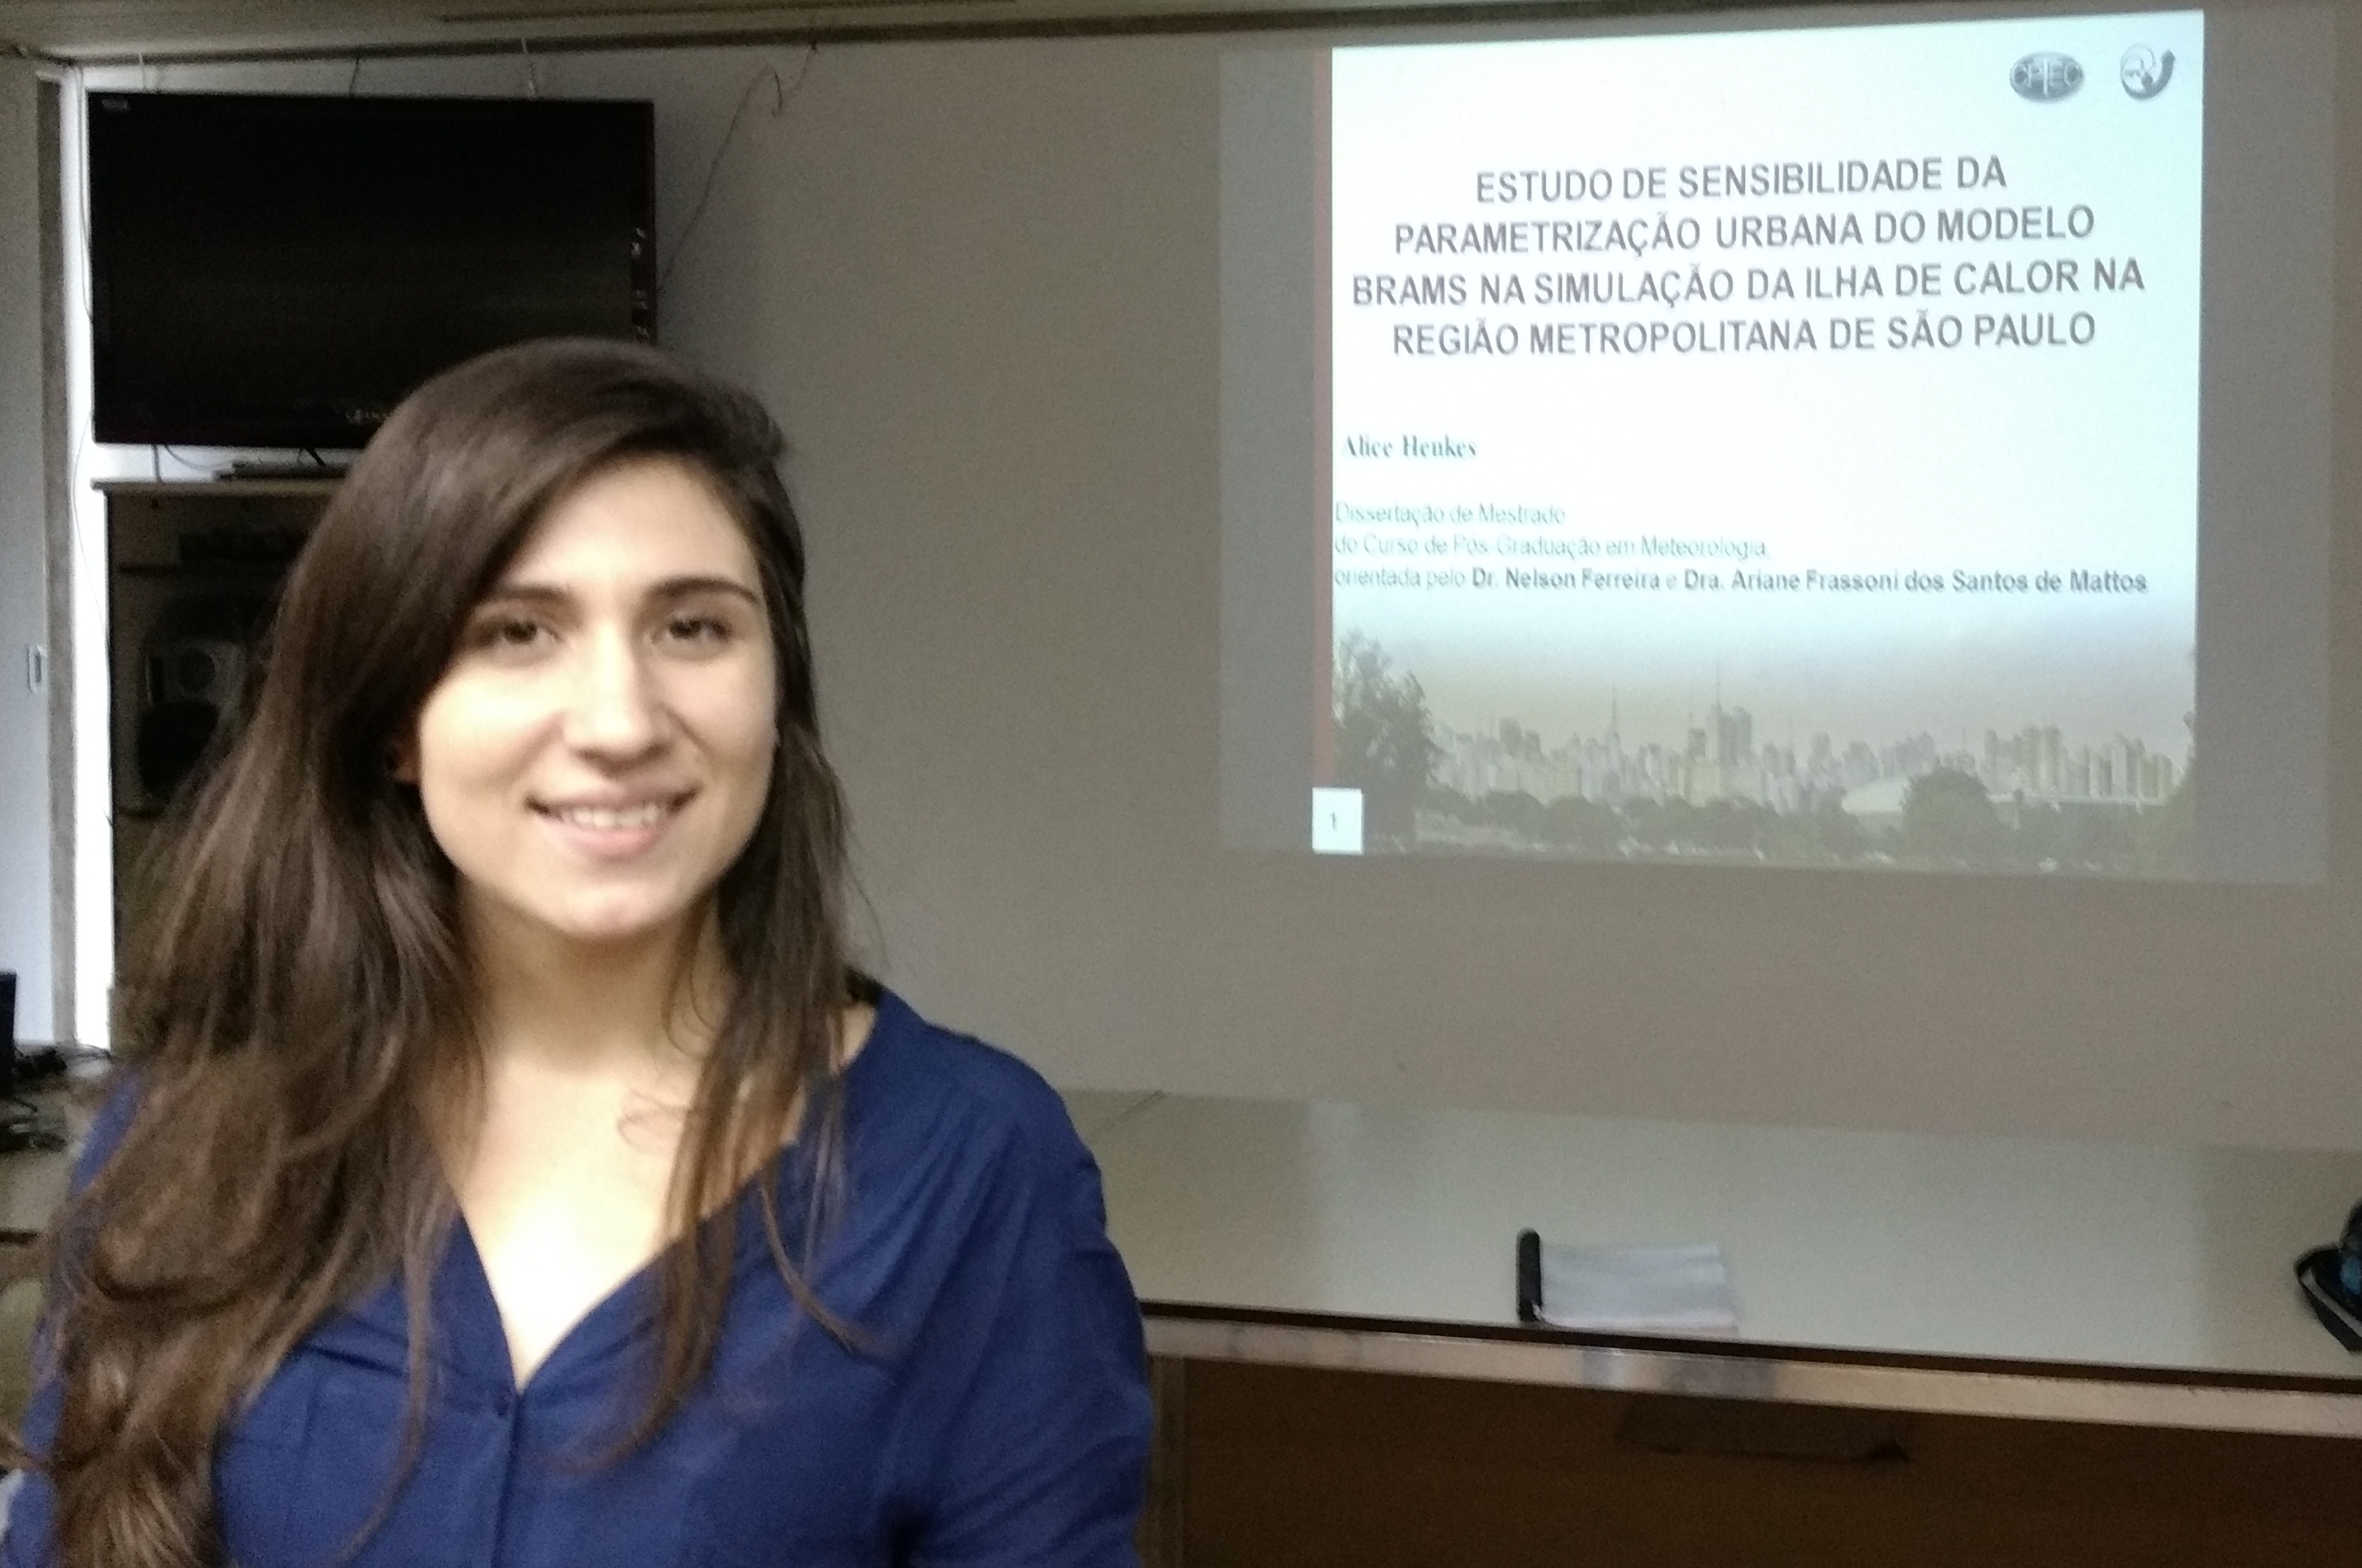 Master dissertation using BRAMS focused on the urban area of São Paulo